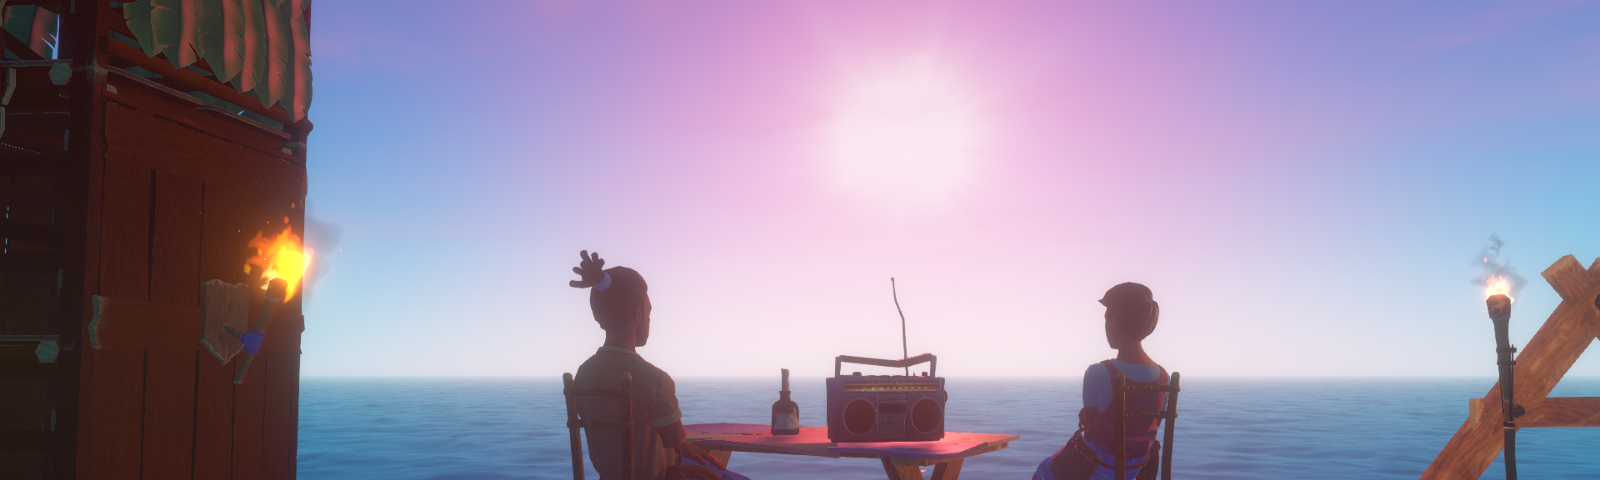 Screenshot of the game. Two survivors watch the sunset from chairs around a table with a radio on it on a complex raft.